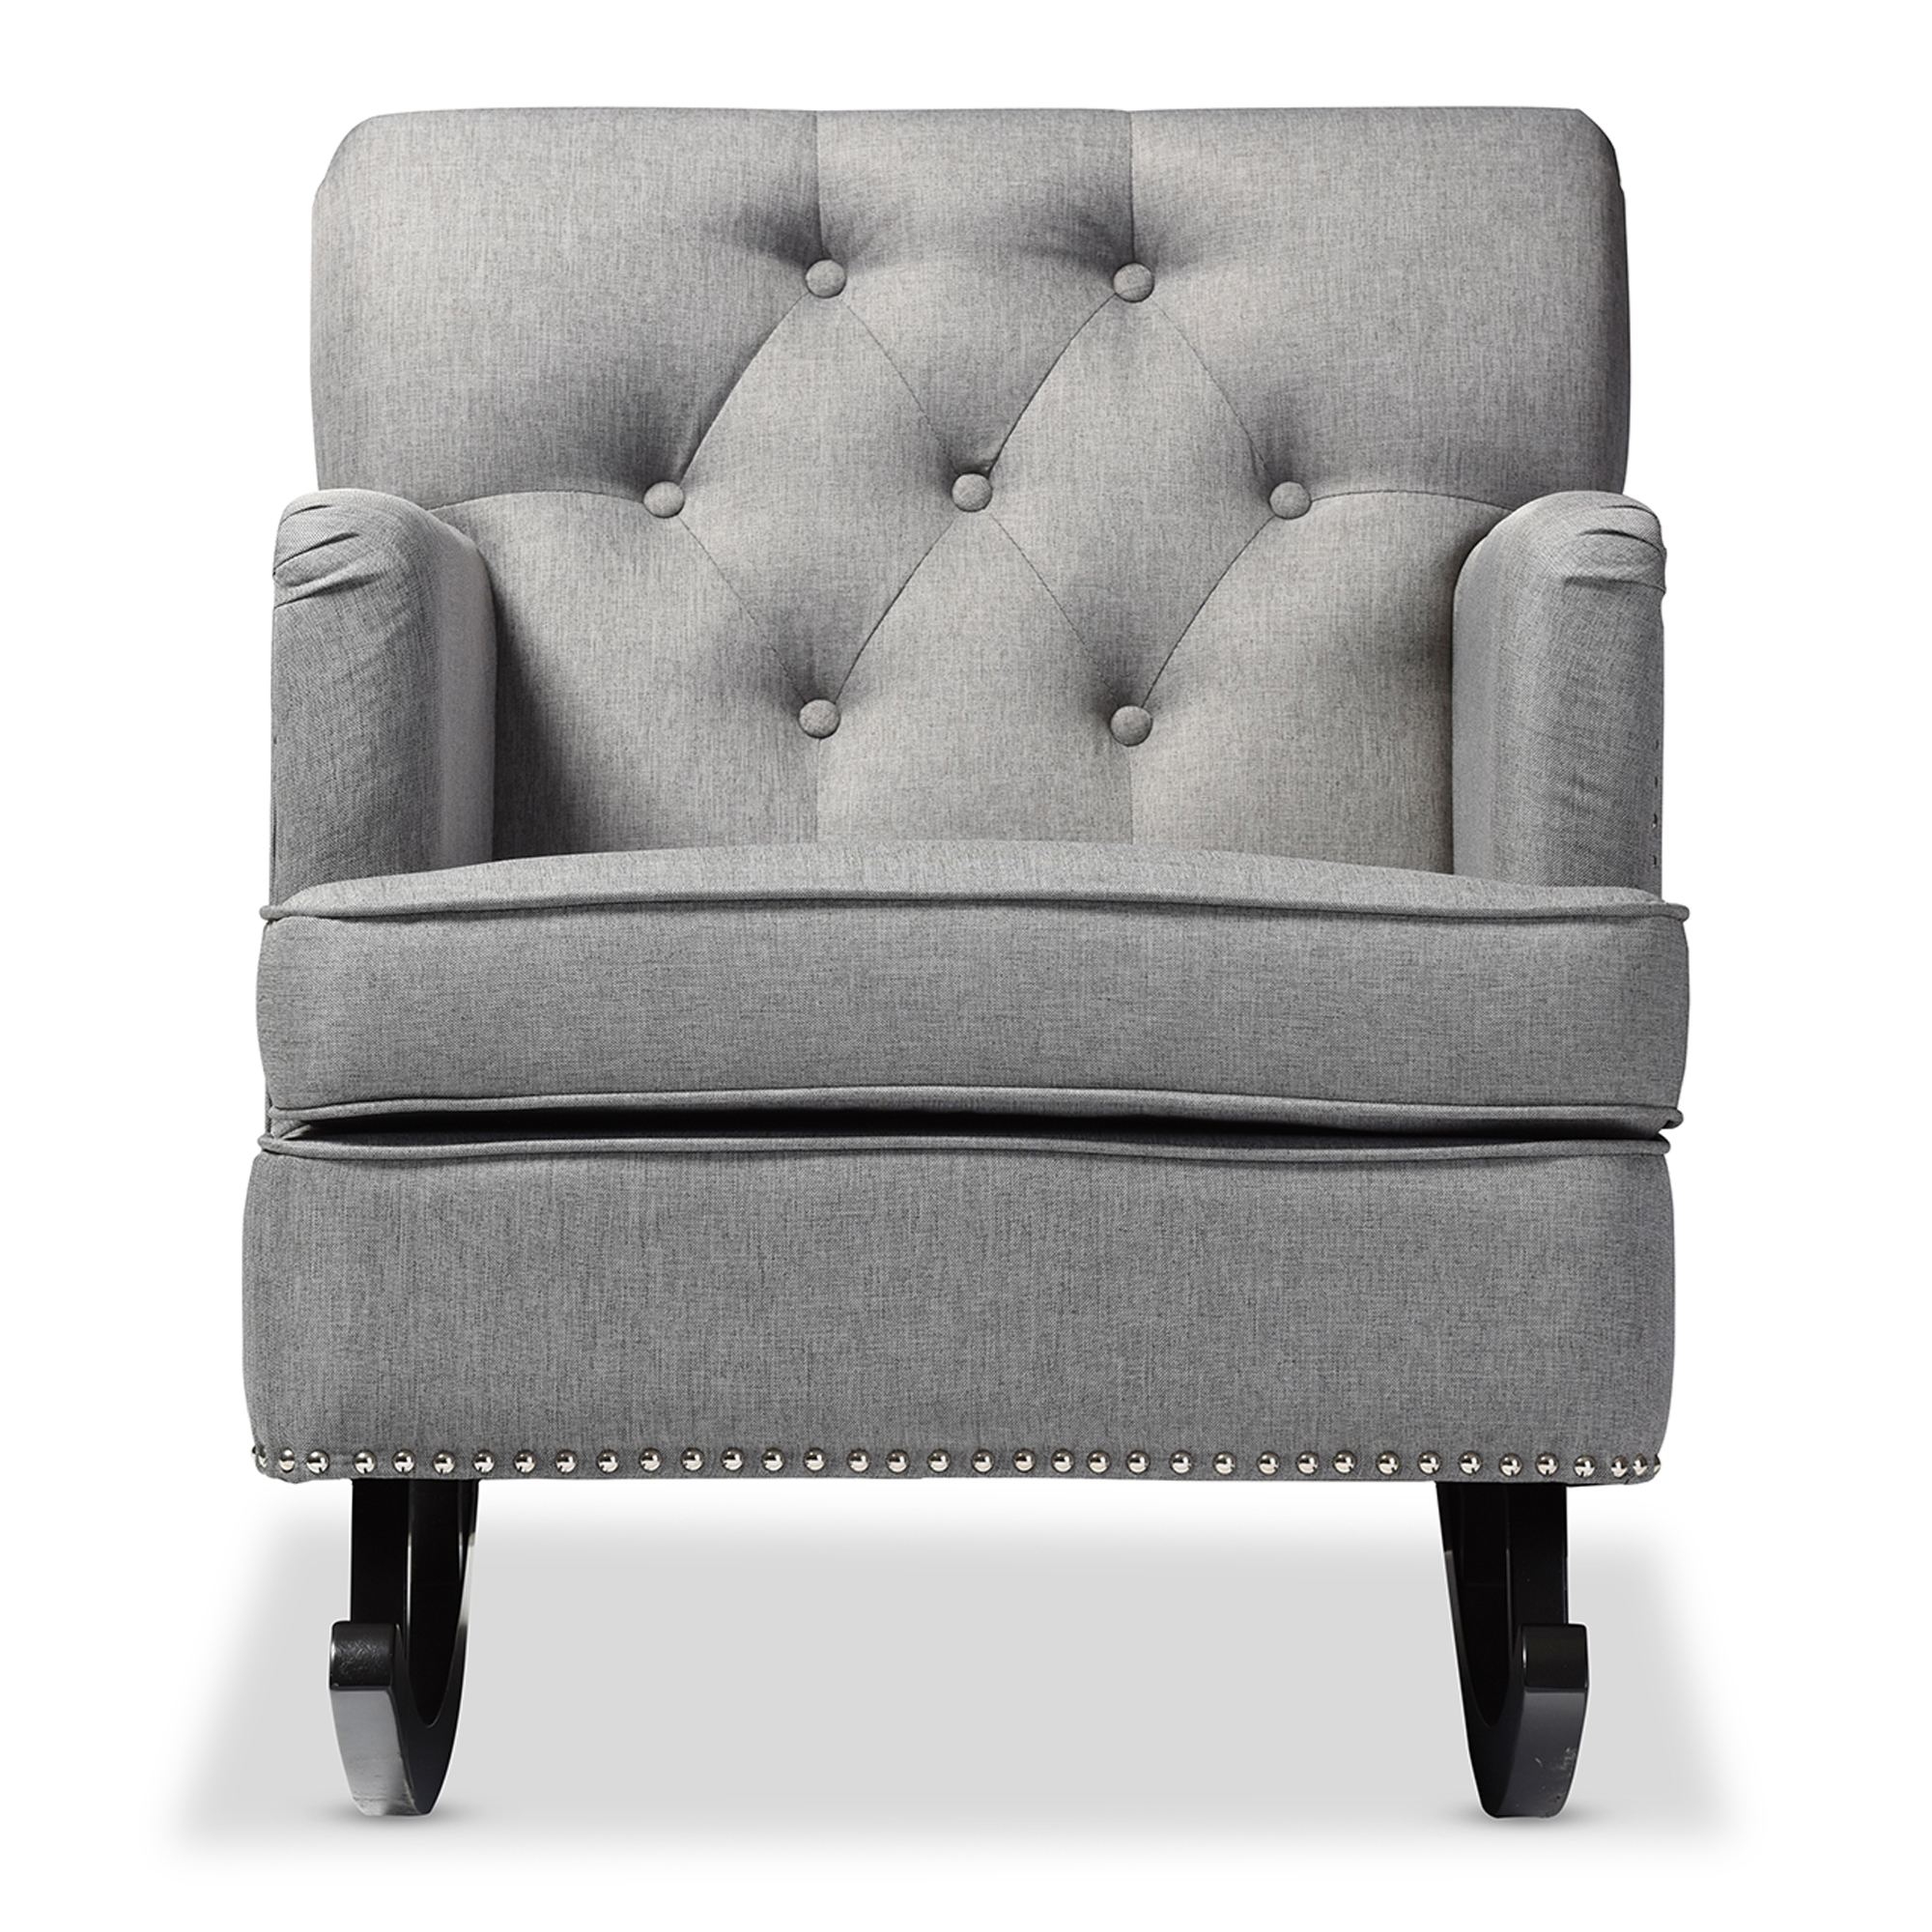 Baxton Studio Bethany Modern And Contemporary Grey Fabric Upholstered  Button Tufted Rocking Chair   IEBBT5189 ...